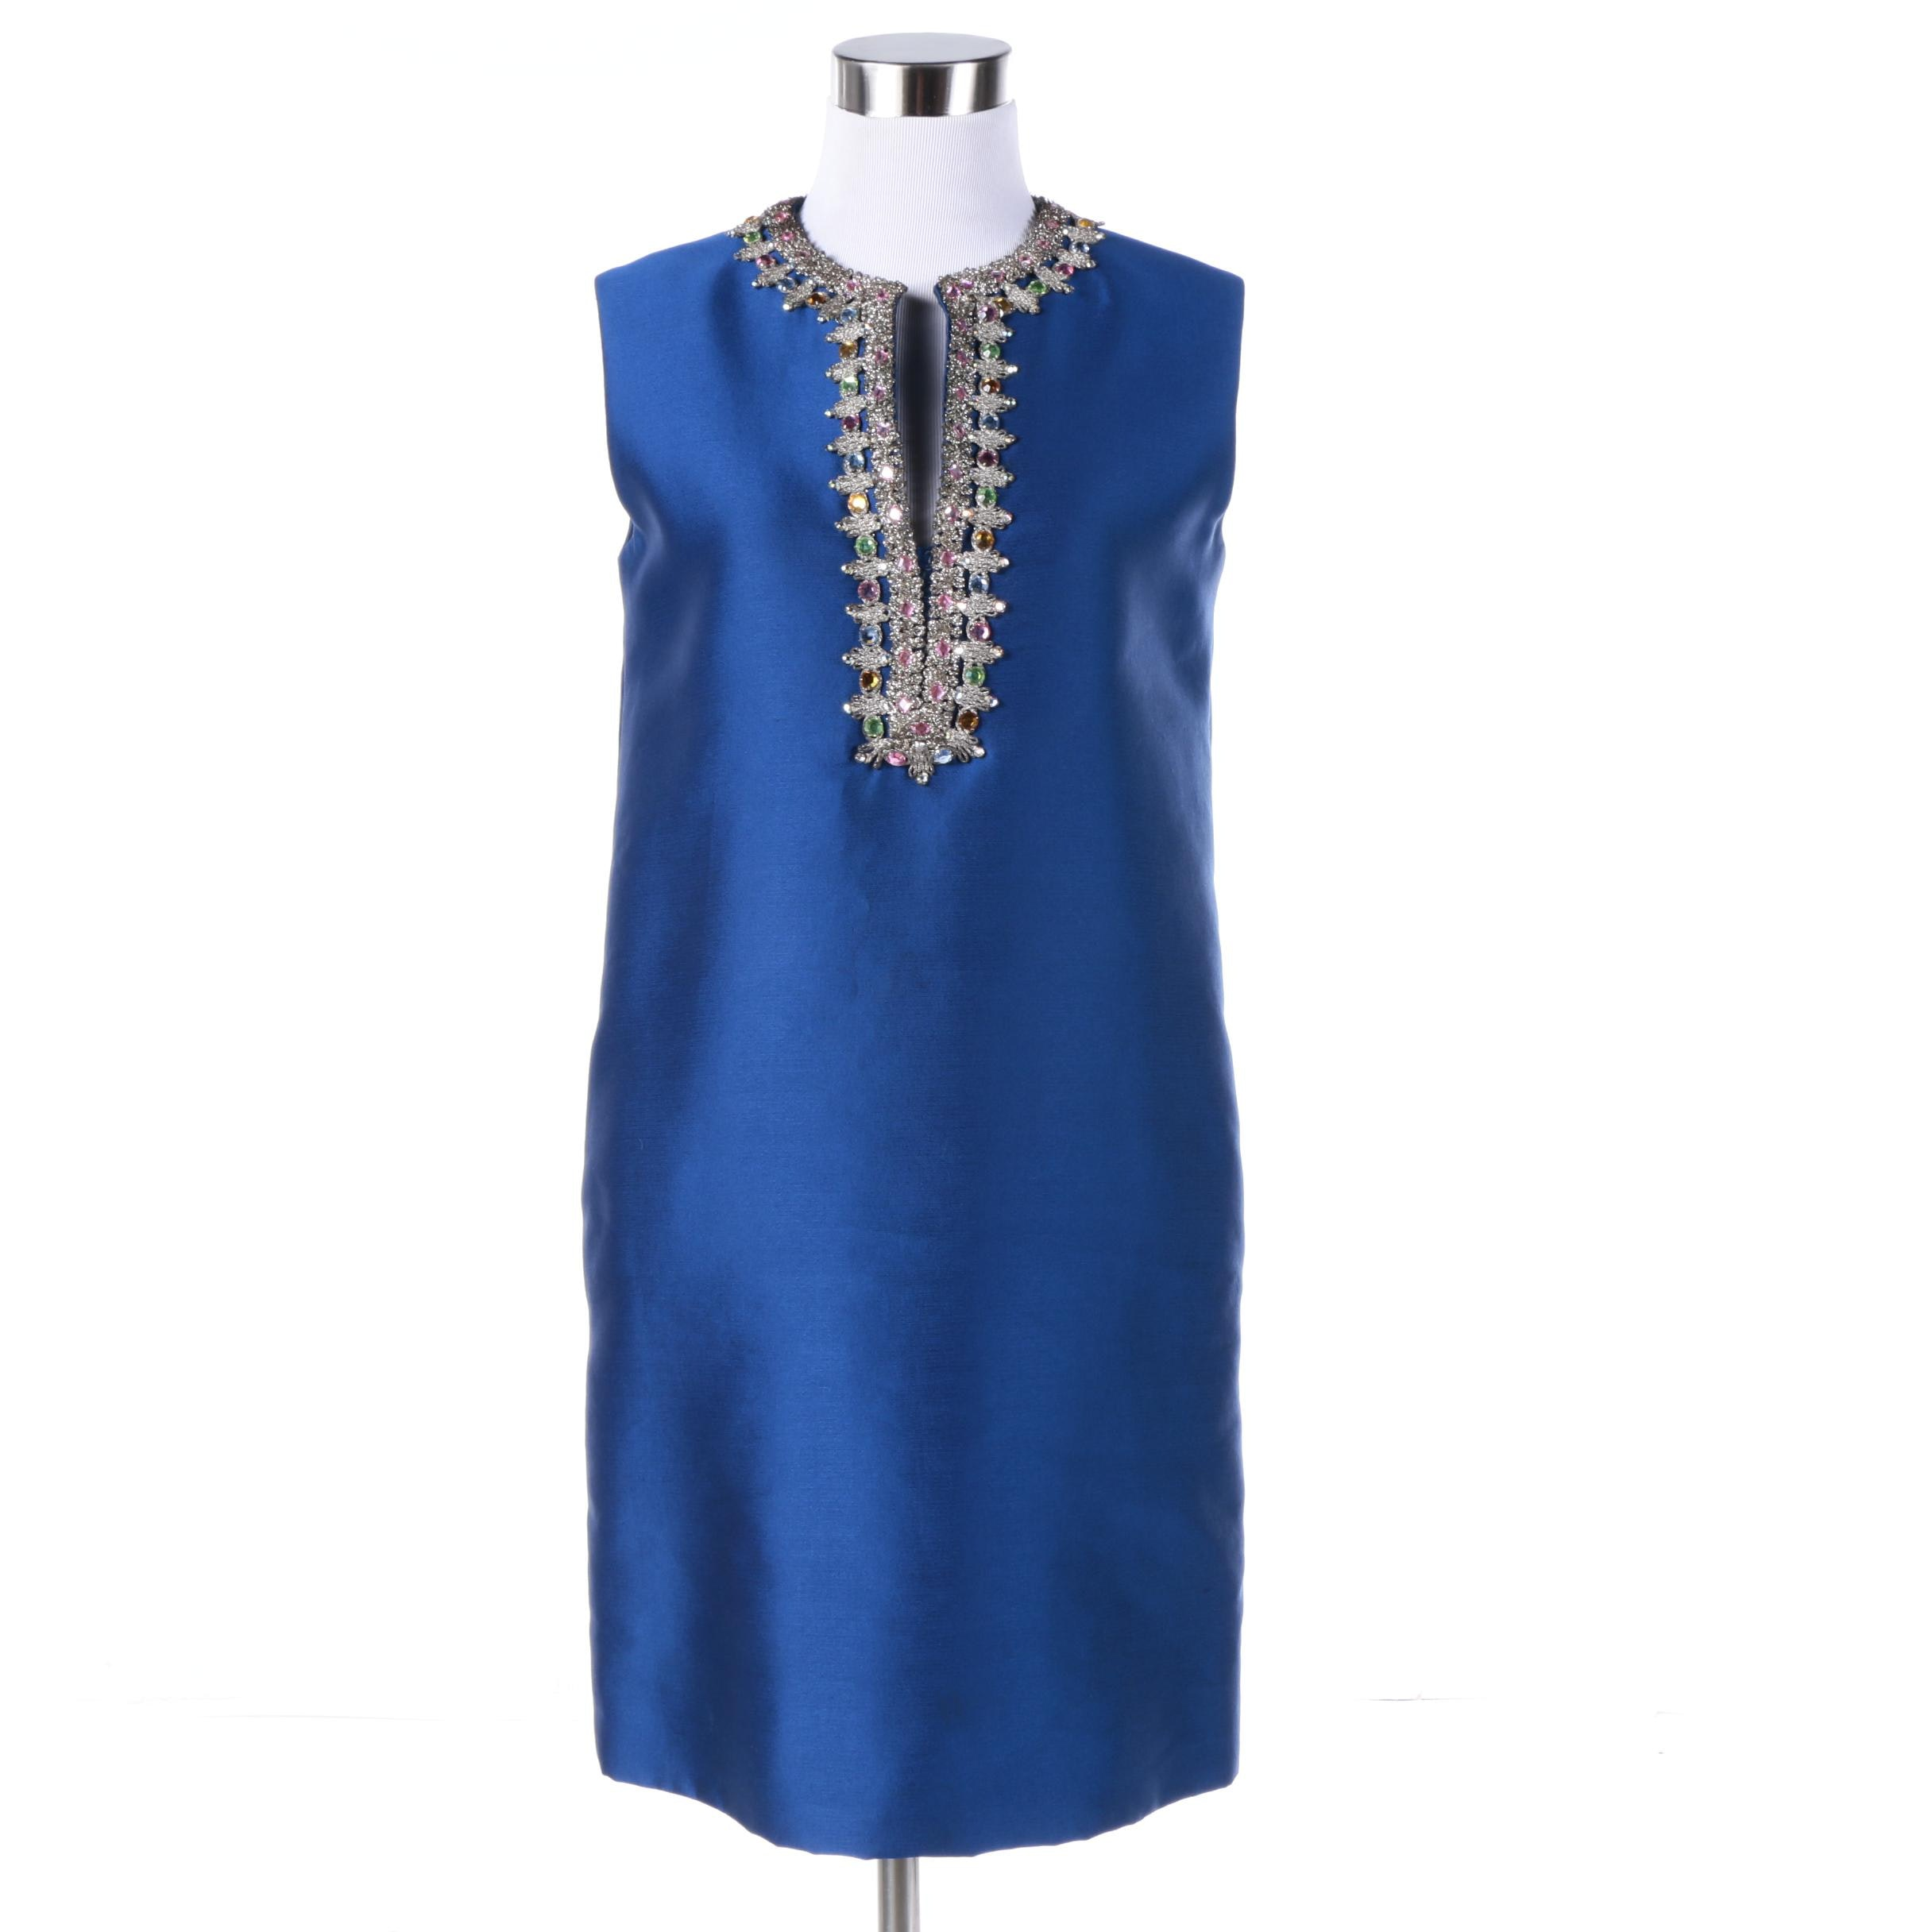 1960s Vintage Shift Dress with Embellished Neckline